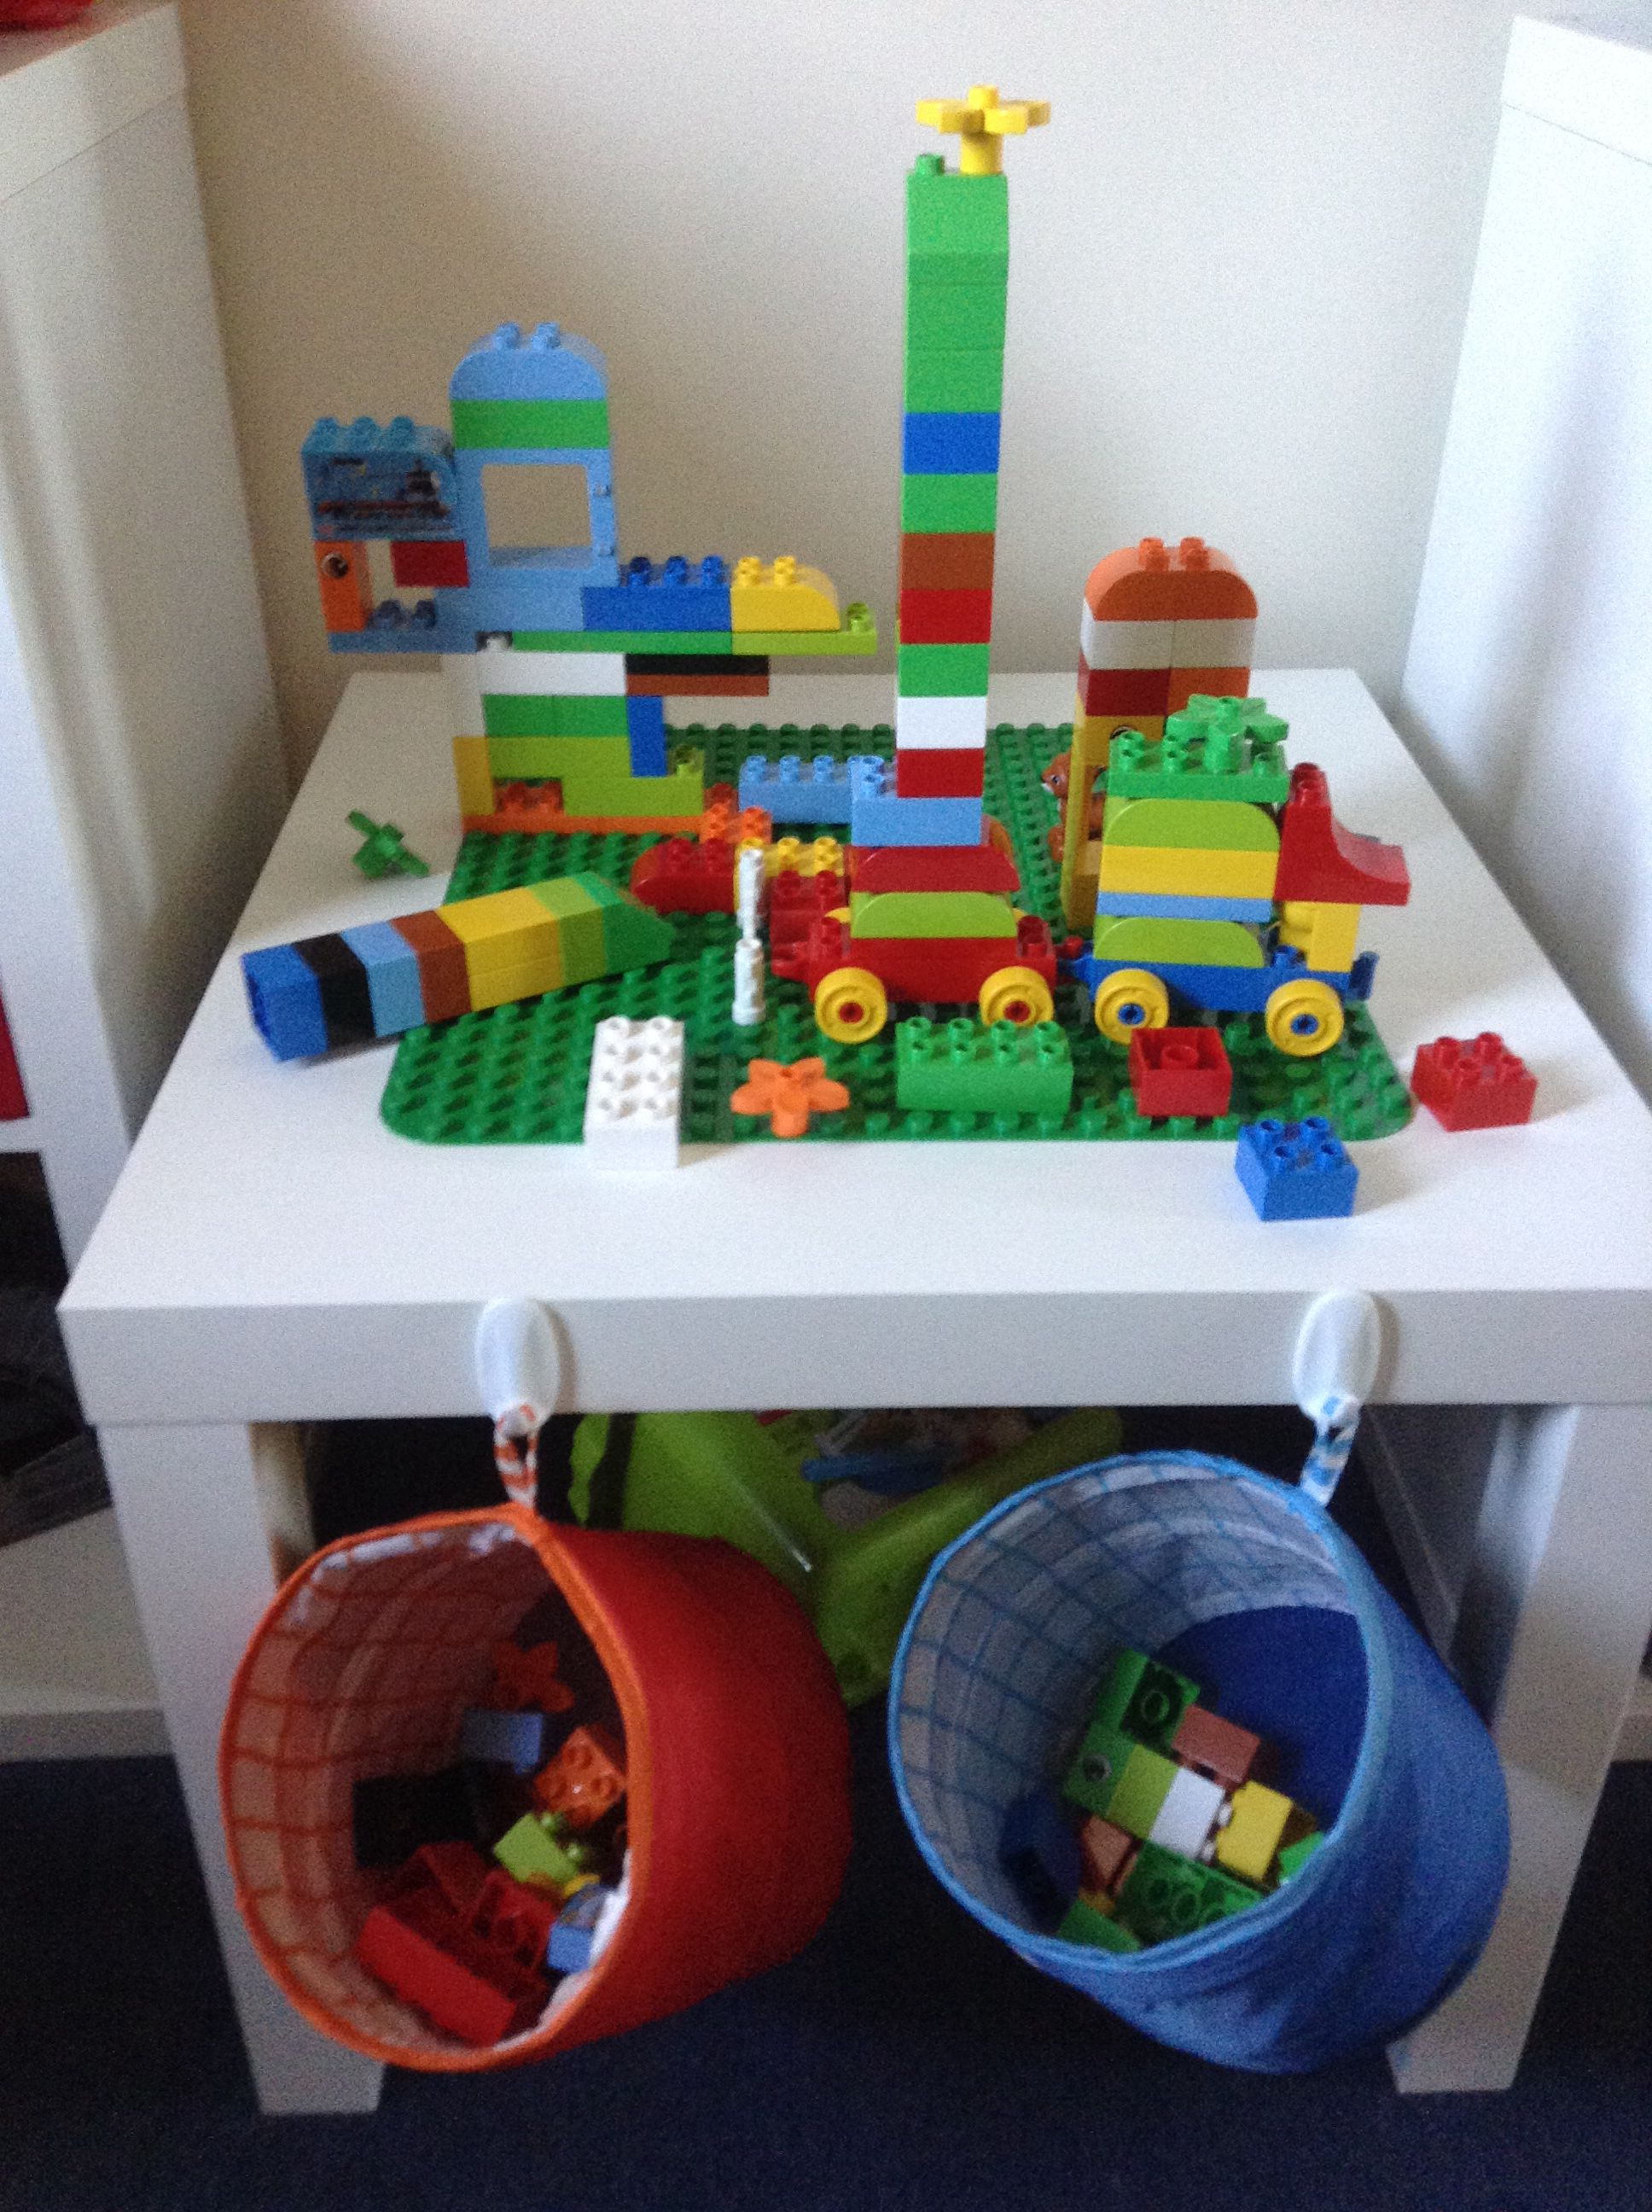 IKEA Lack LEGO Table & 13 Awesome IKEA LEGO Tables that Your Kids Will Go Crazy Over!